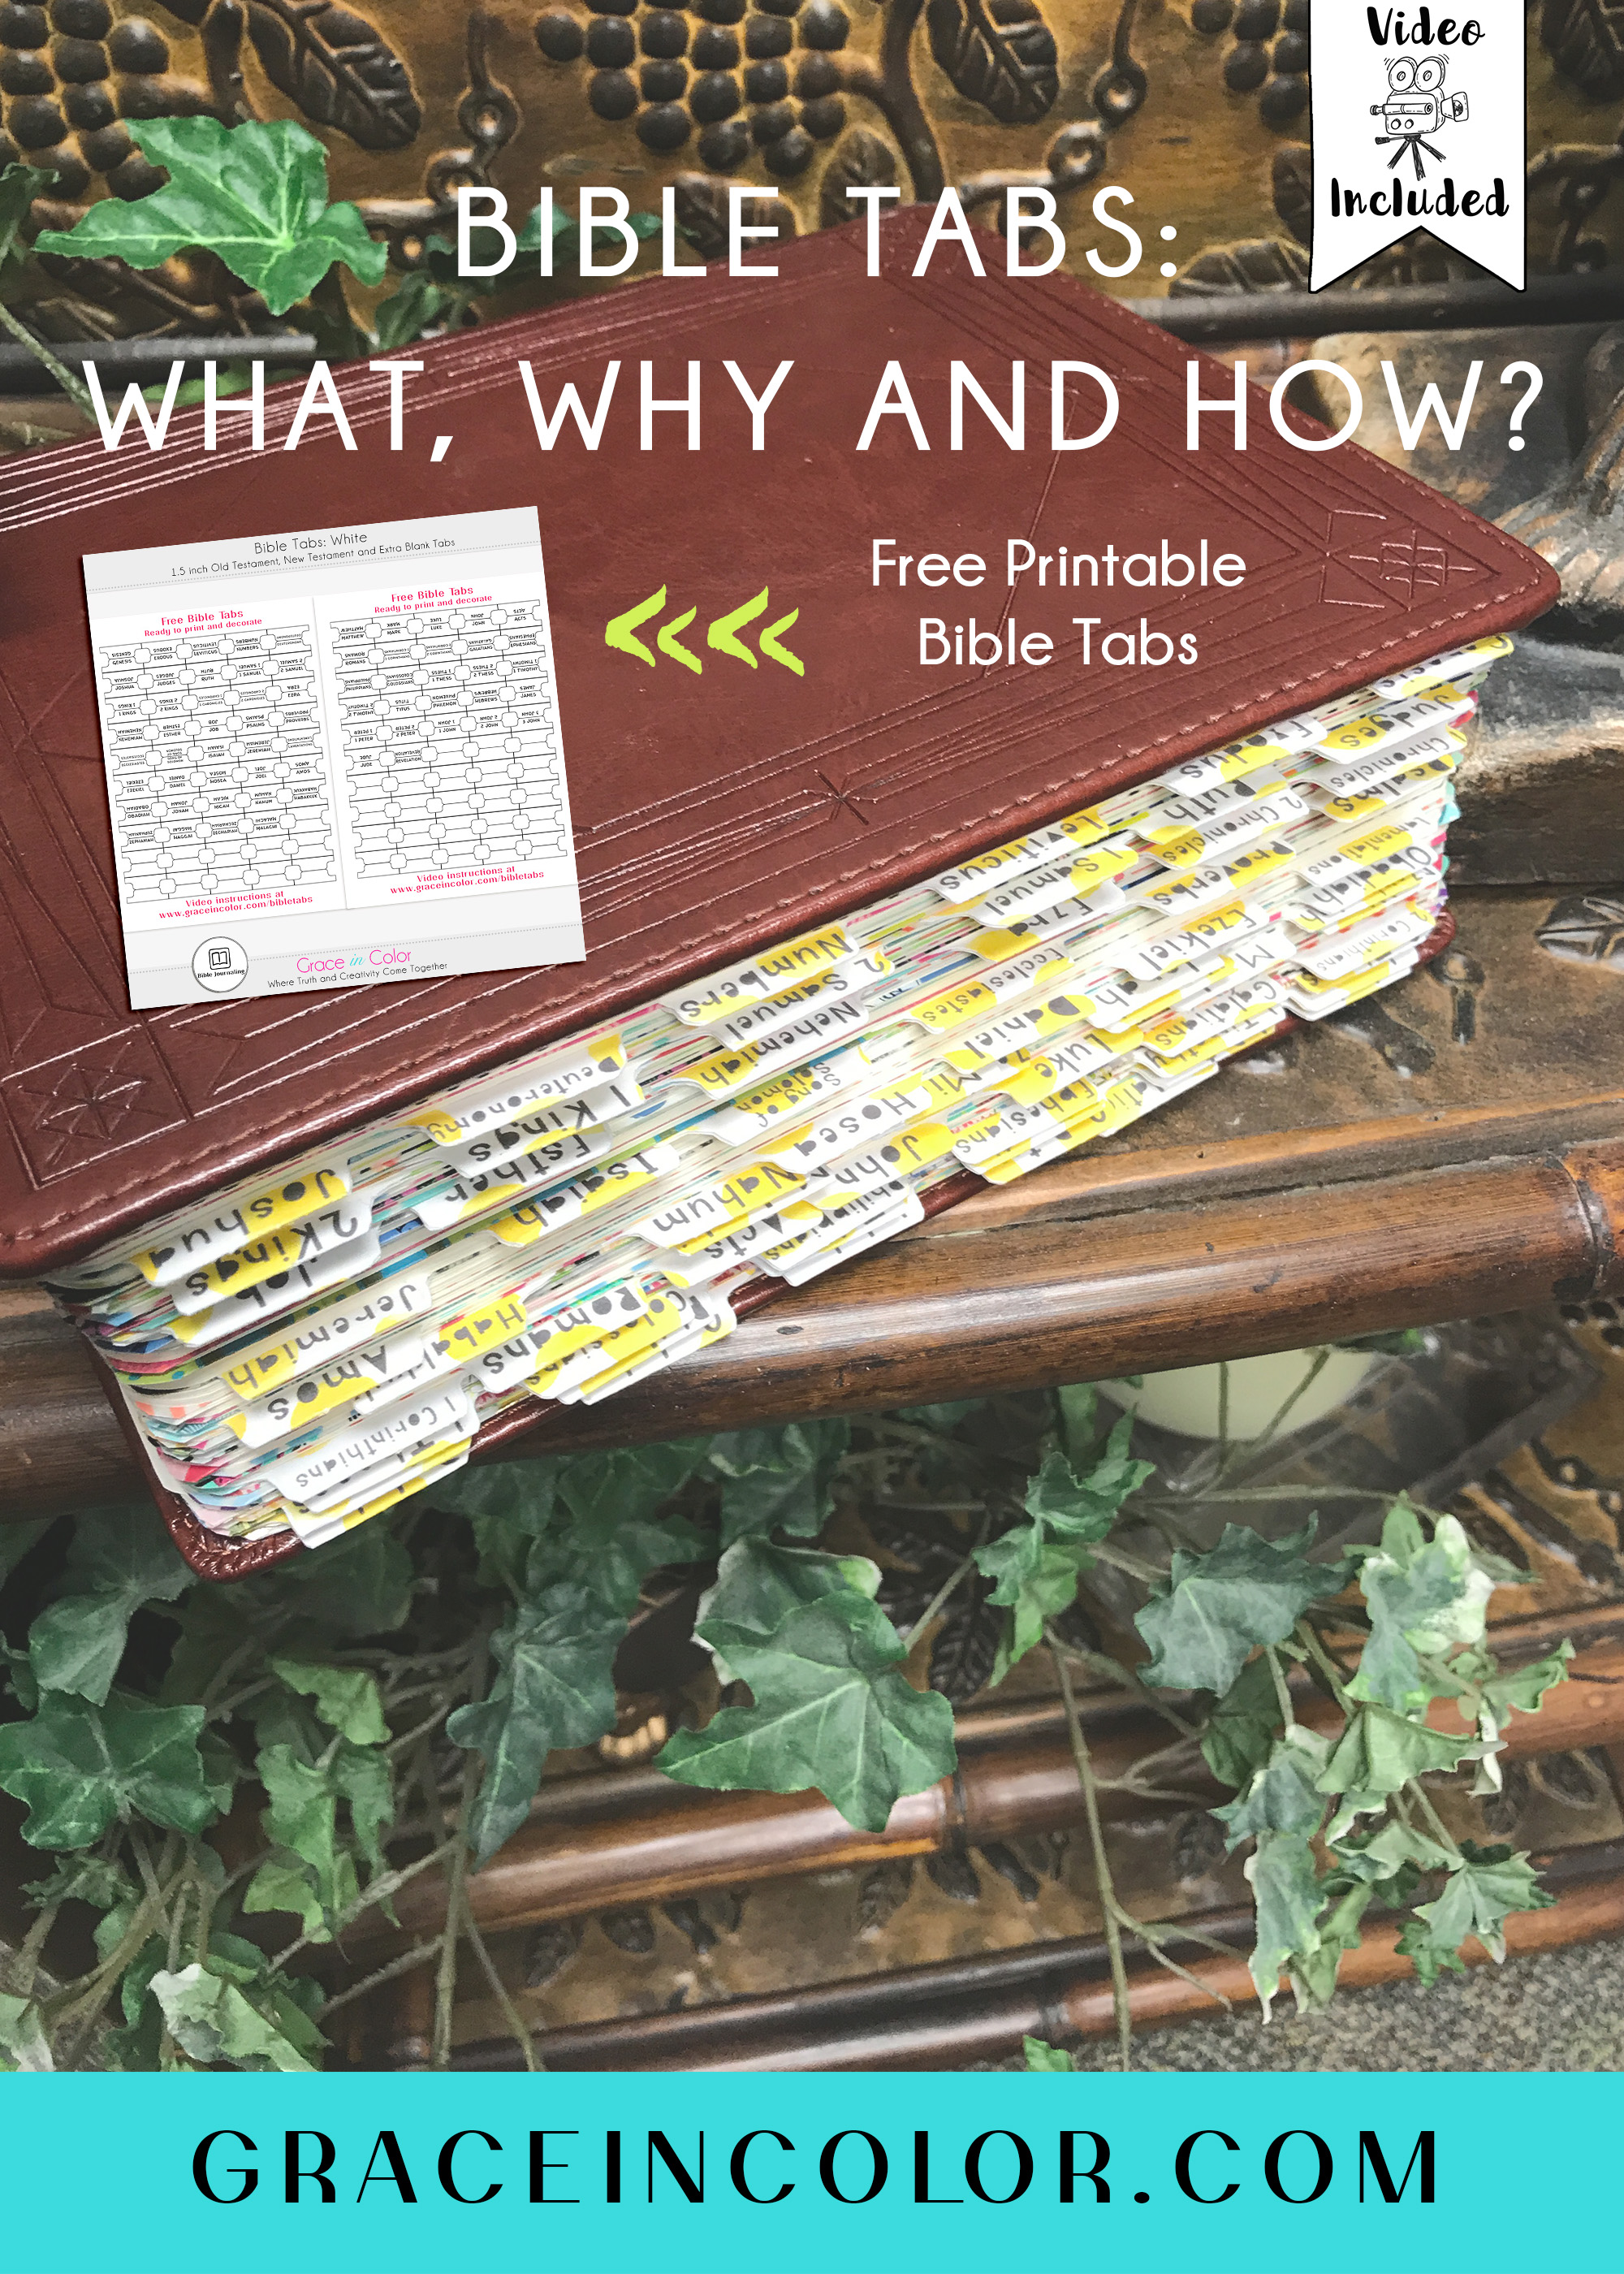 graphic regarding Printable Bible Tabs named Bible Tabs: What, Why and How Movie - Grace in just Coloration